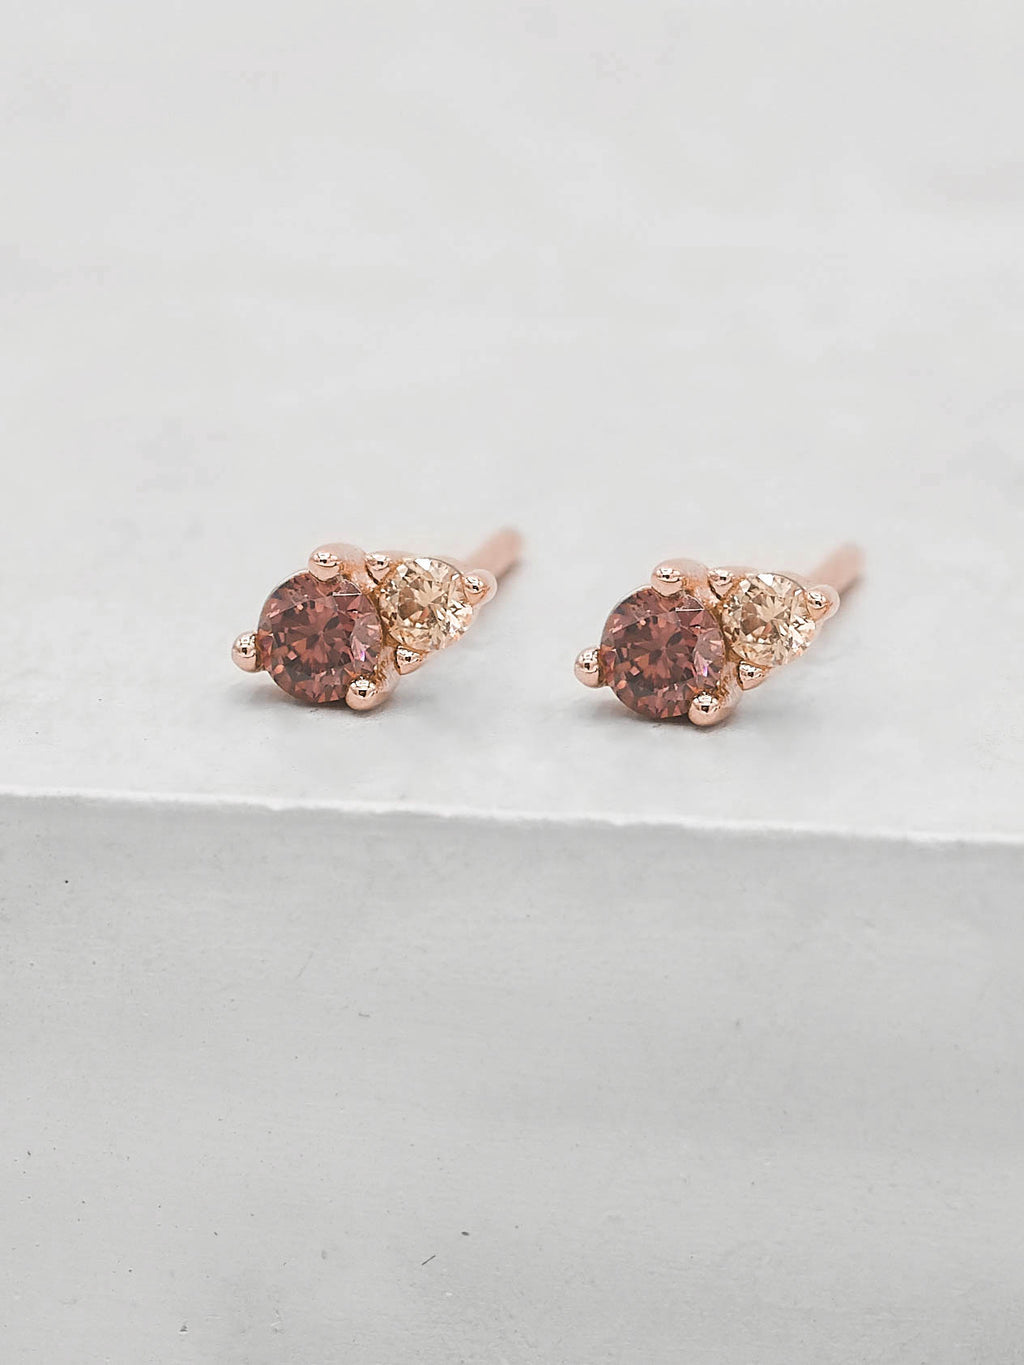 2 Stone Rose Gold Plated Pink Round Shape CZ Stones Stud Earrings by The Faint Hearted Jewelry